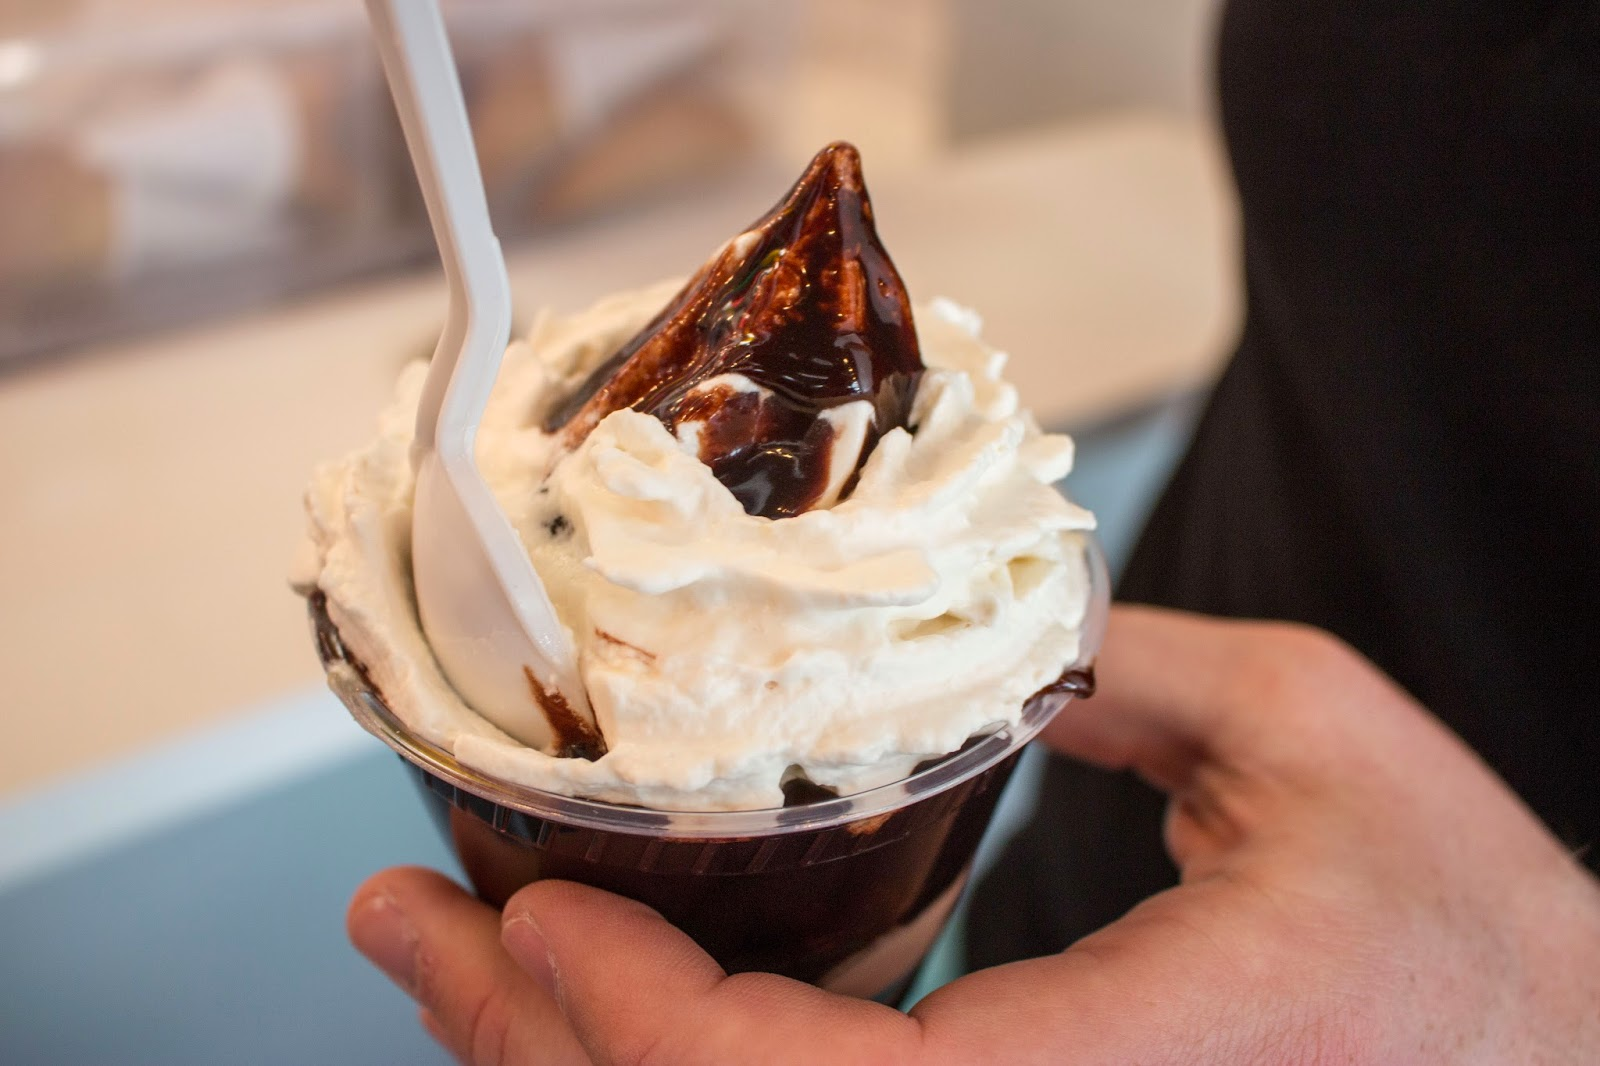 Philly Food Blog: Big Gay Ice Cream Philly Hot Fudge Sundae